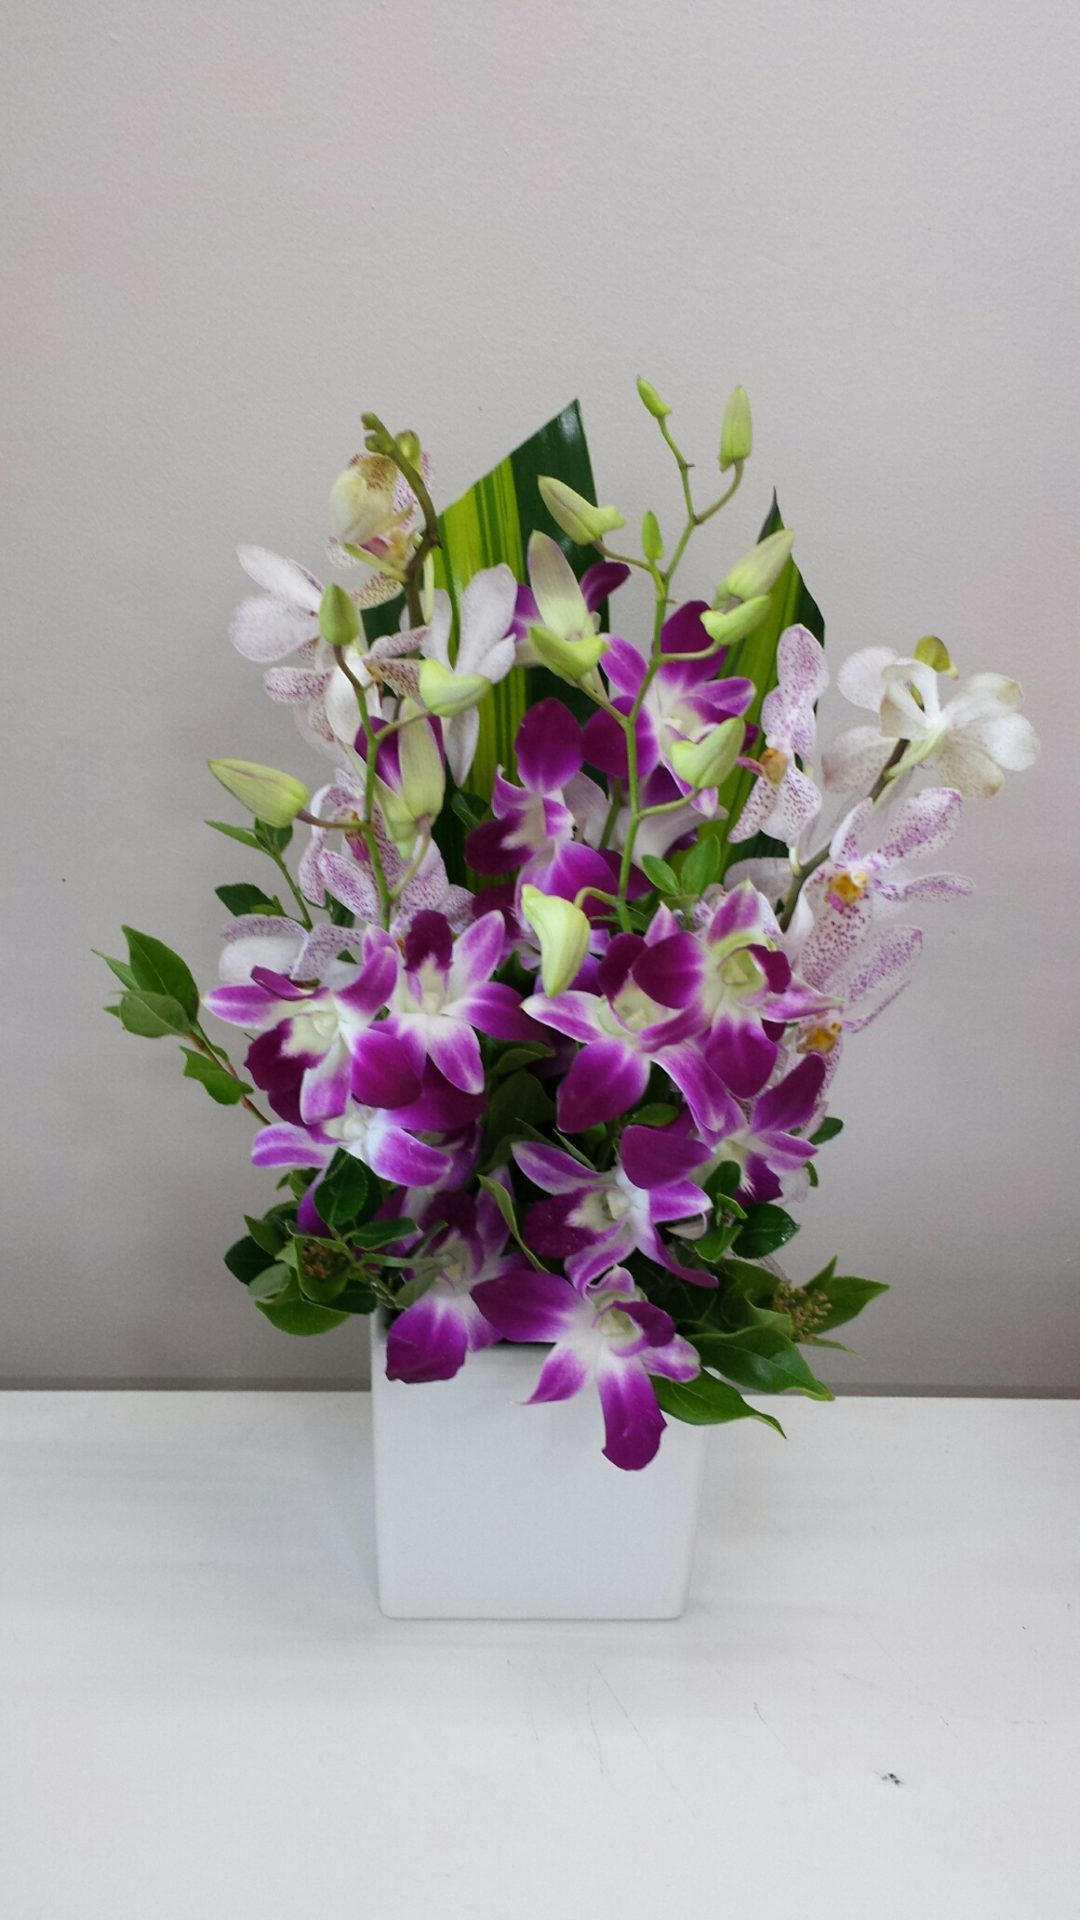 Orchid Ceramic Corporate flowers, Flower arrangements